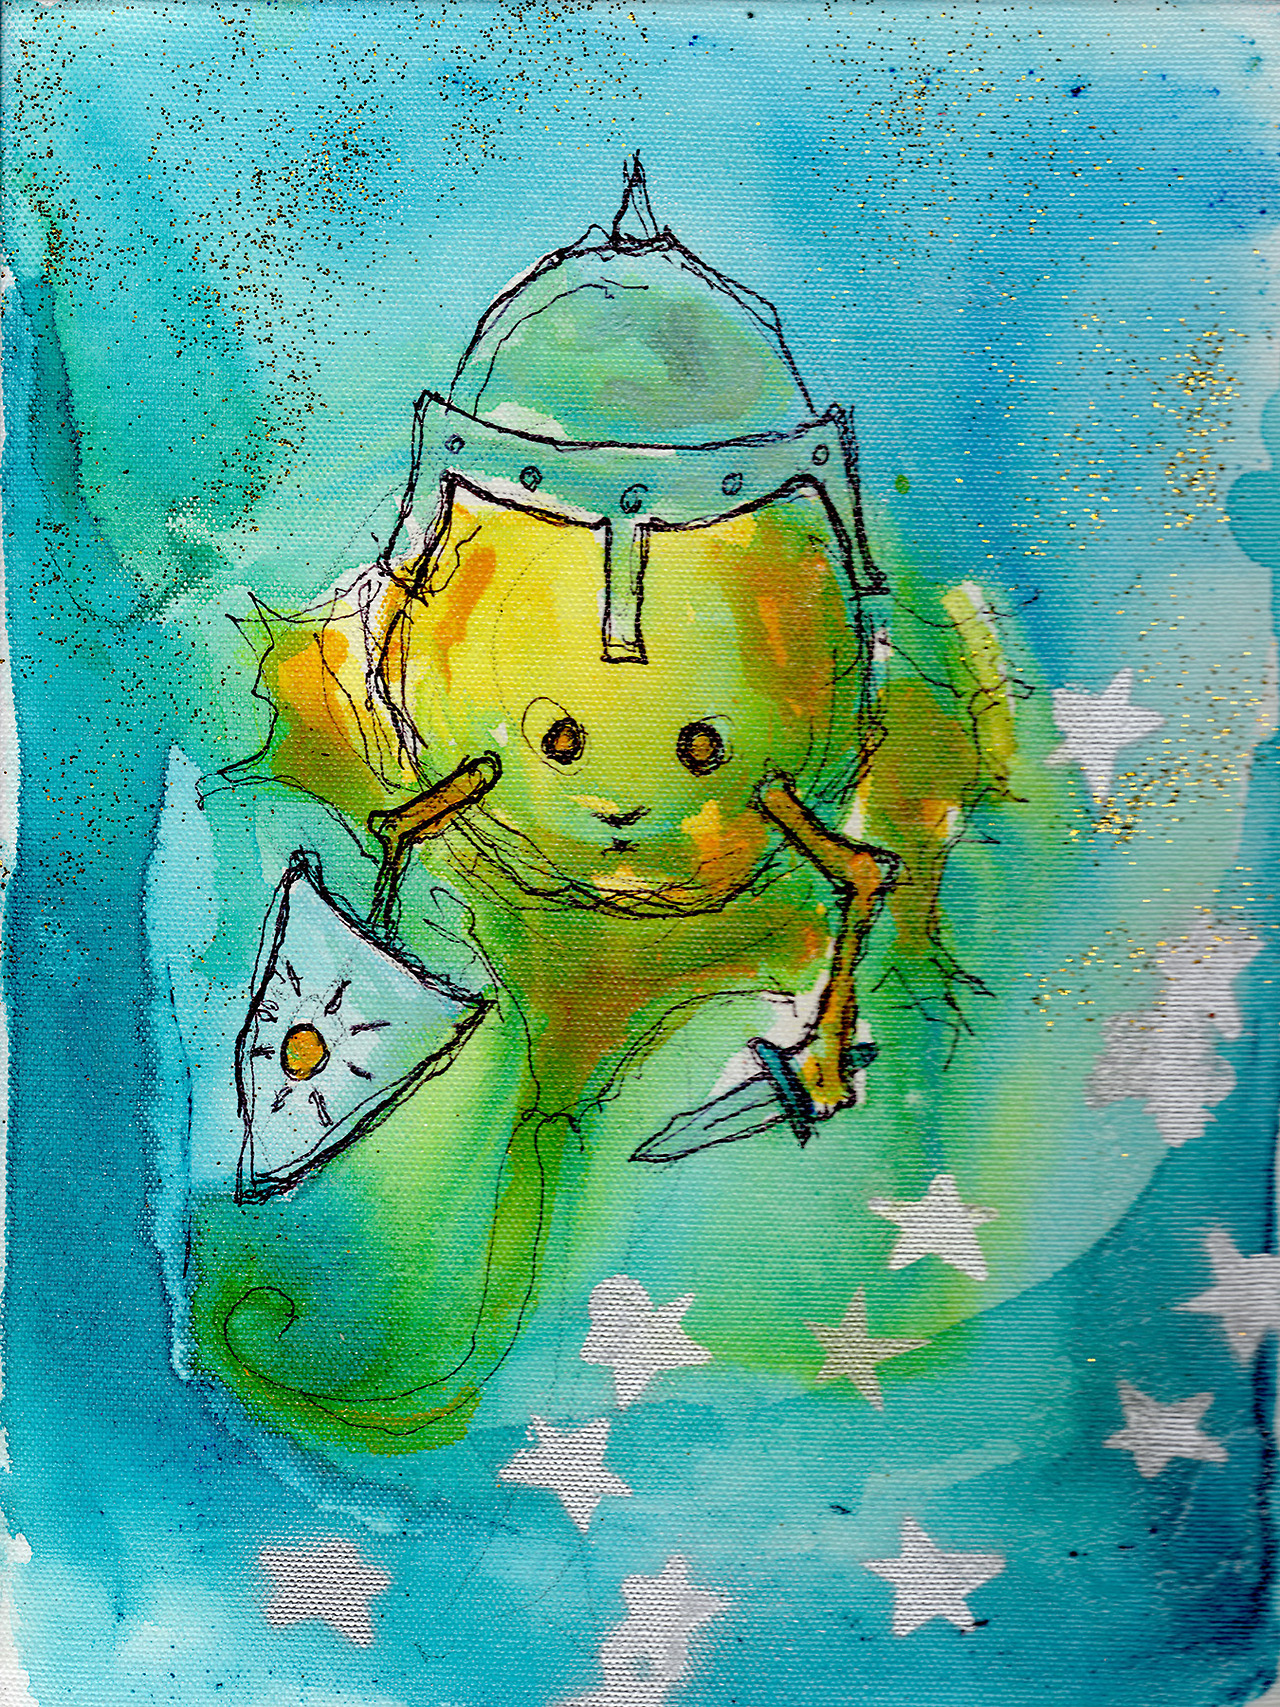 "4/7/13 - Knight Sun. The sun is a cranky, surly thing. Well, at least here in Seattle he is. 9"" x 12"" Acrylic paint, sharpie, pencil, polyurethane, glitter on canvas. Available to purchase here: http://taylorwinder.bigcartel.com Prints available here: http://society6.com/taylorwinder"